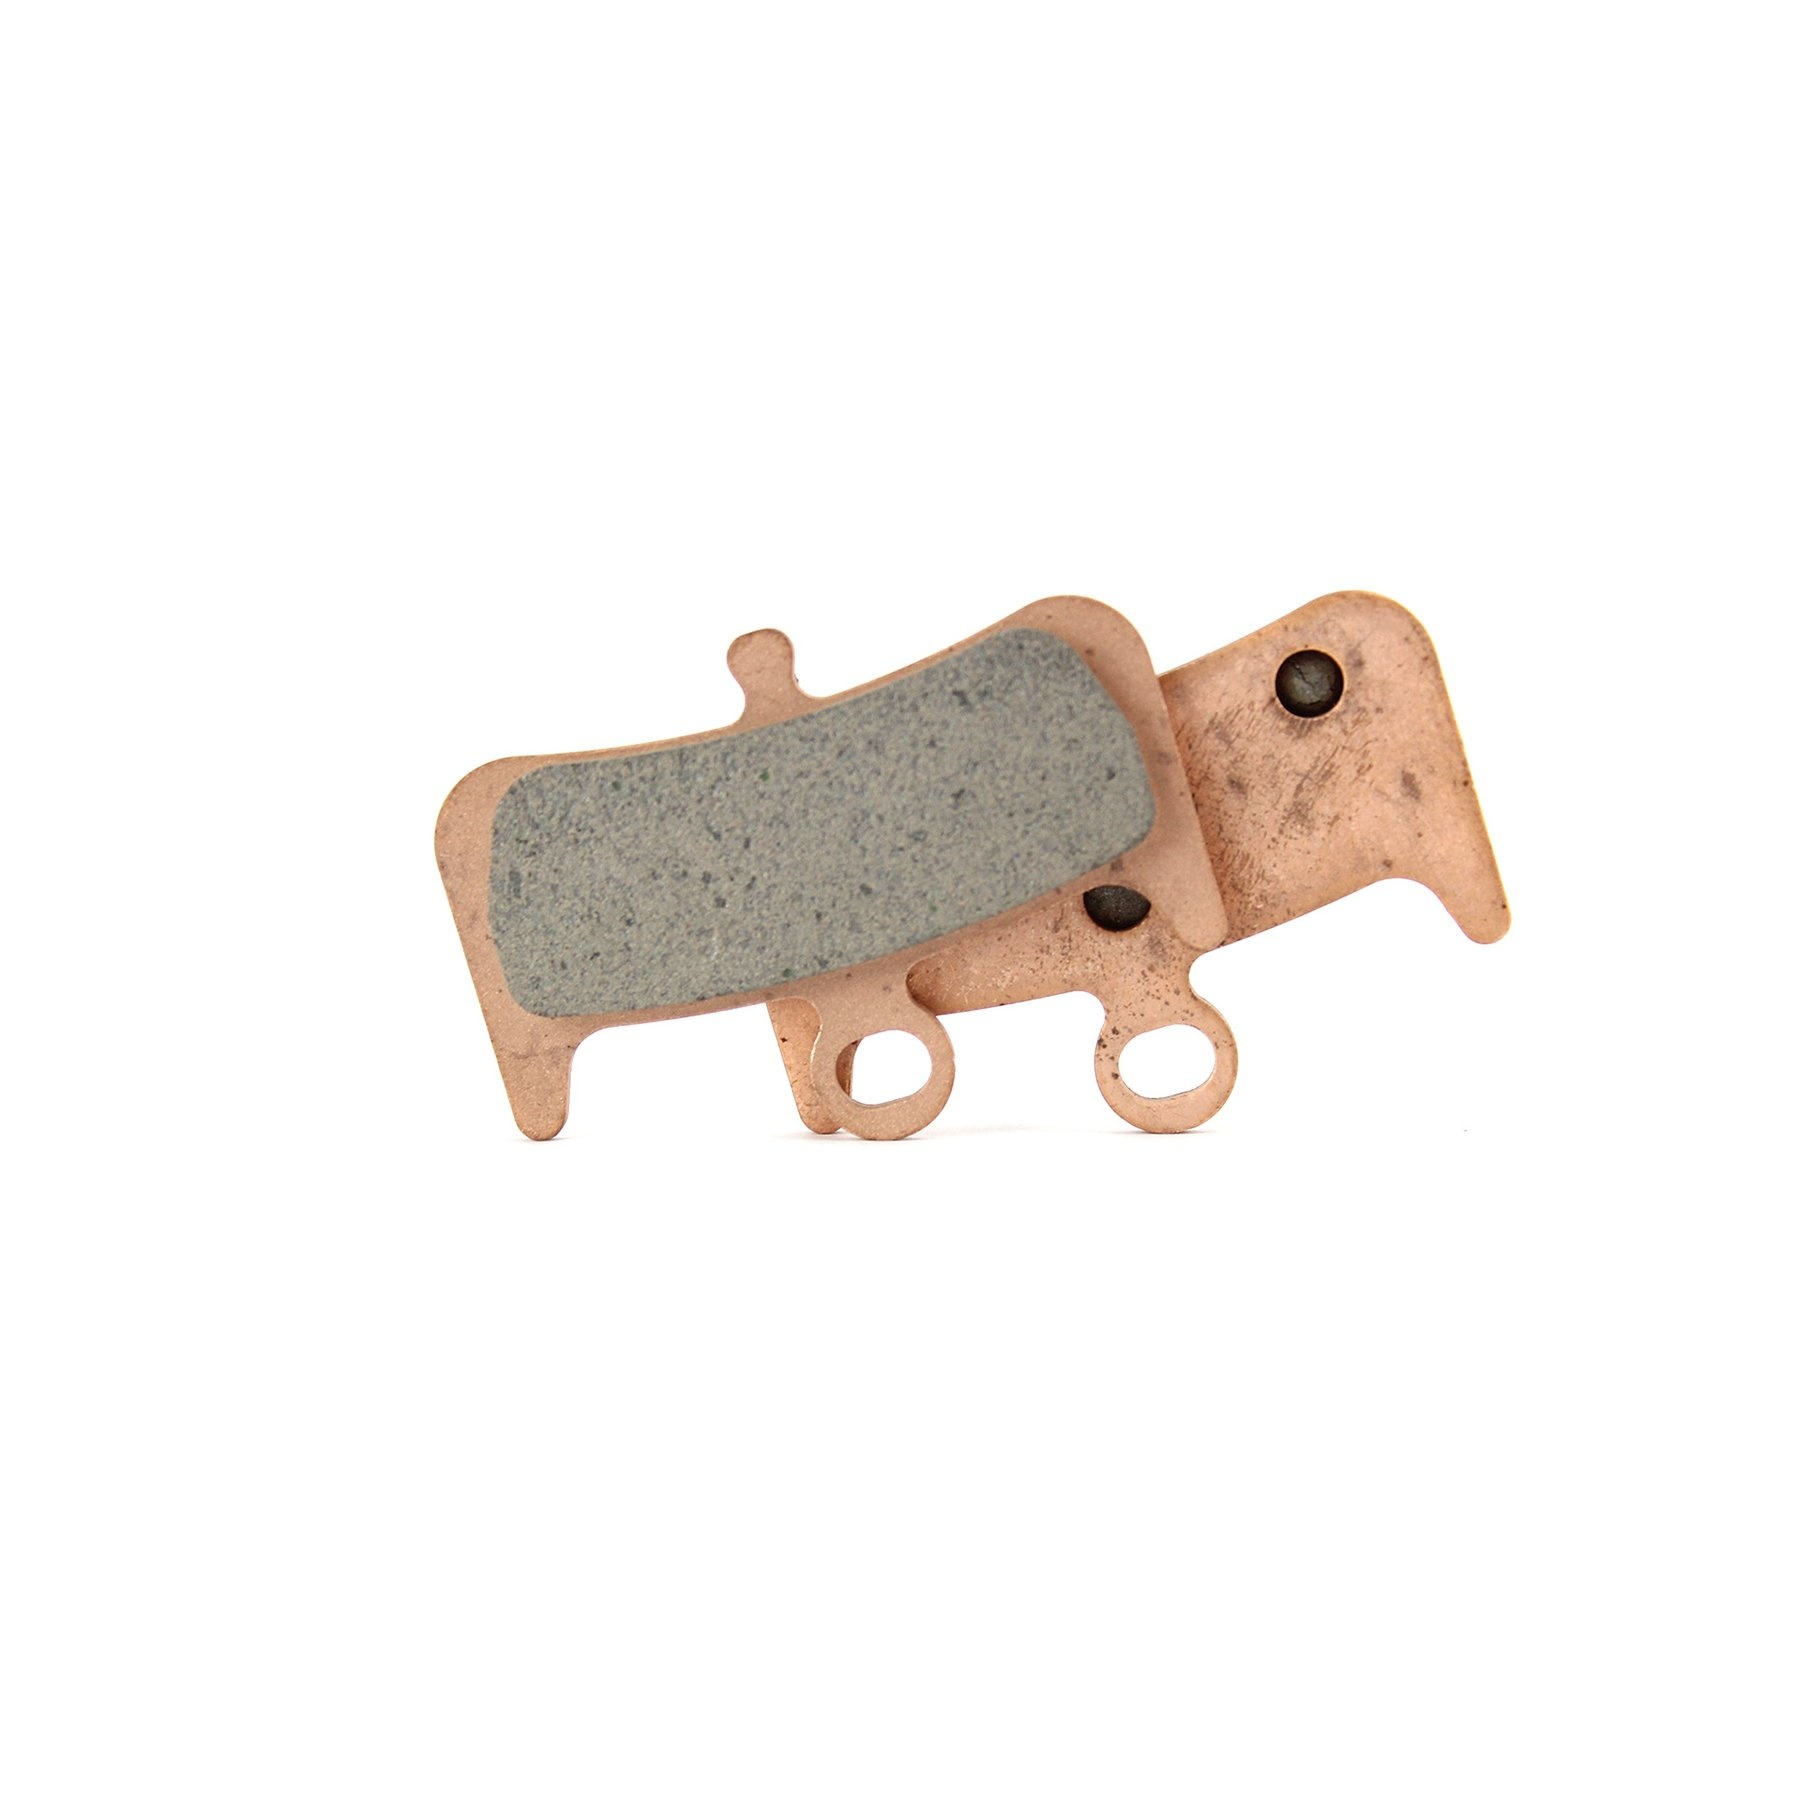 Hayes Dominion A4 Disc Brake Pads, Sintered T100-1